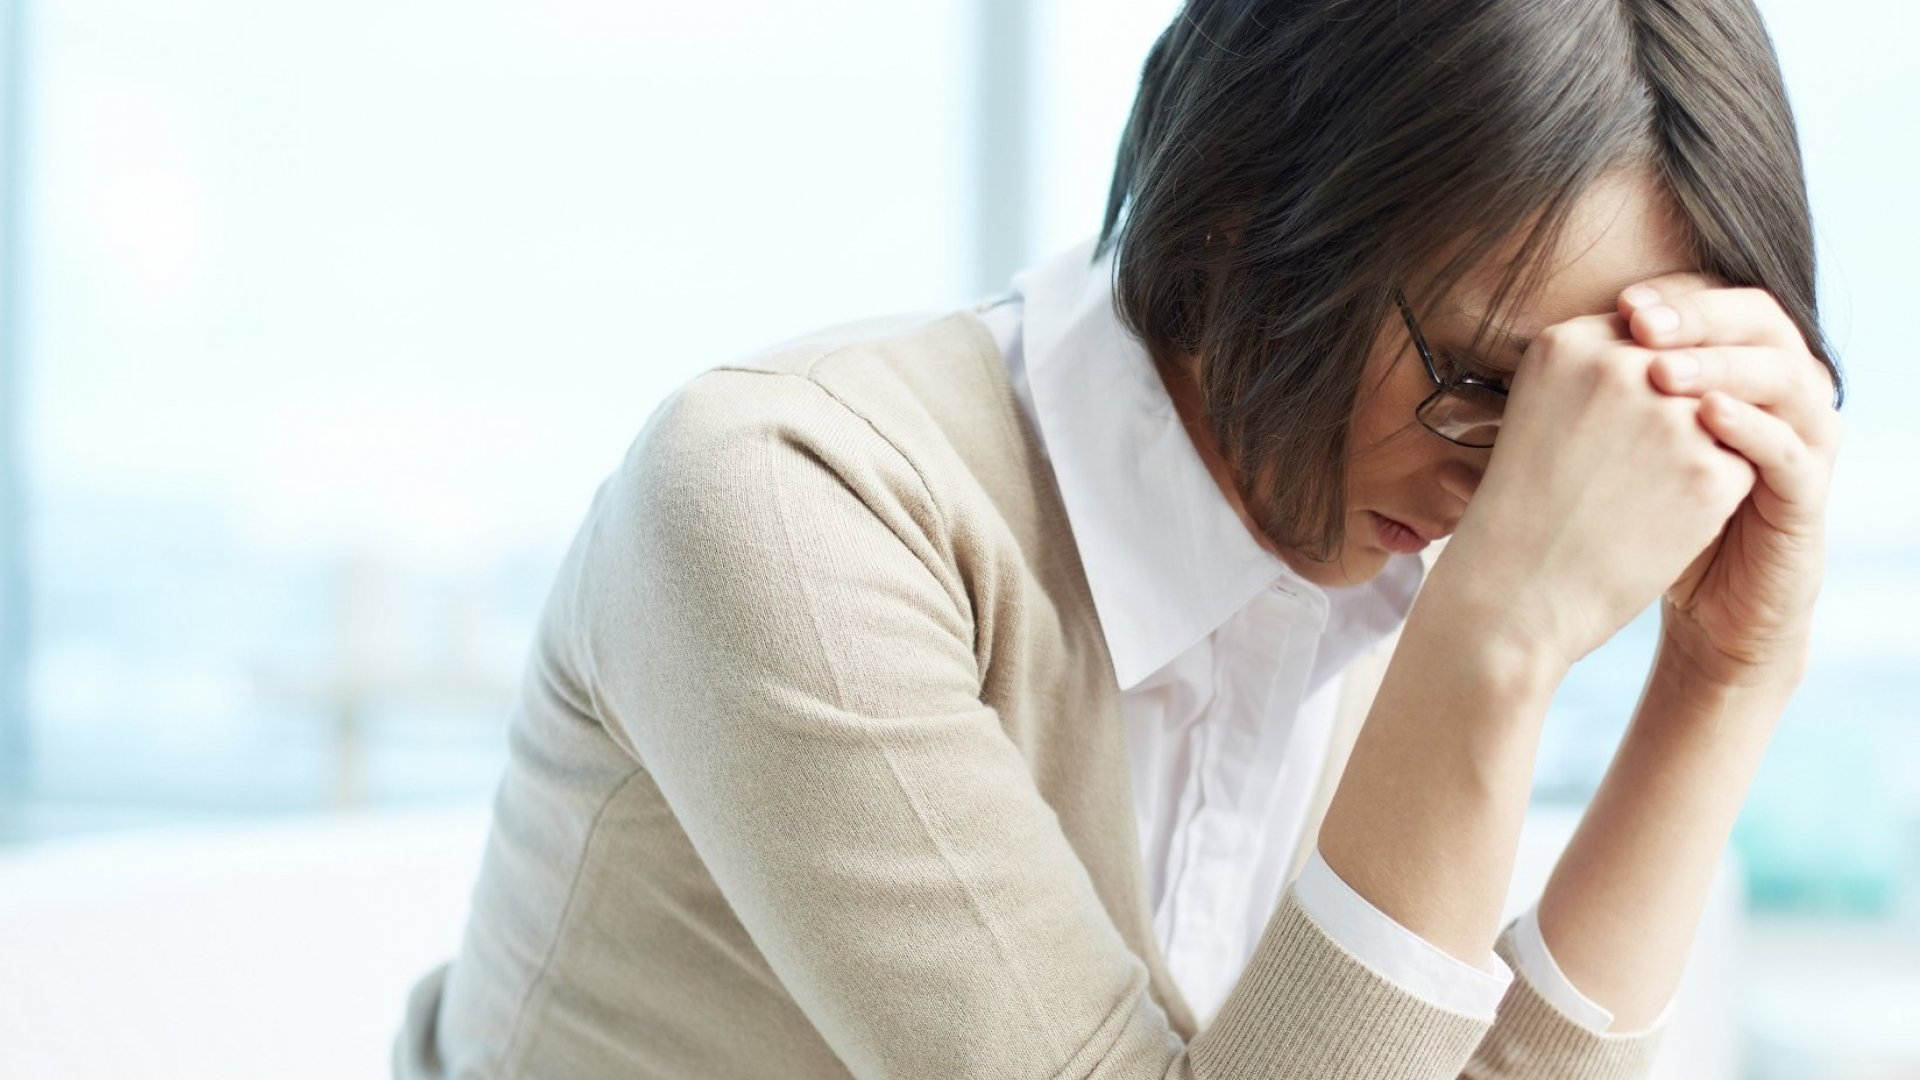 What to Do When Your Boss Has a Mental Illness